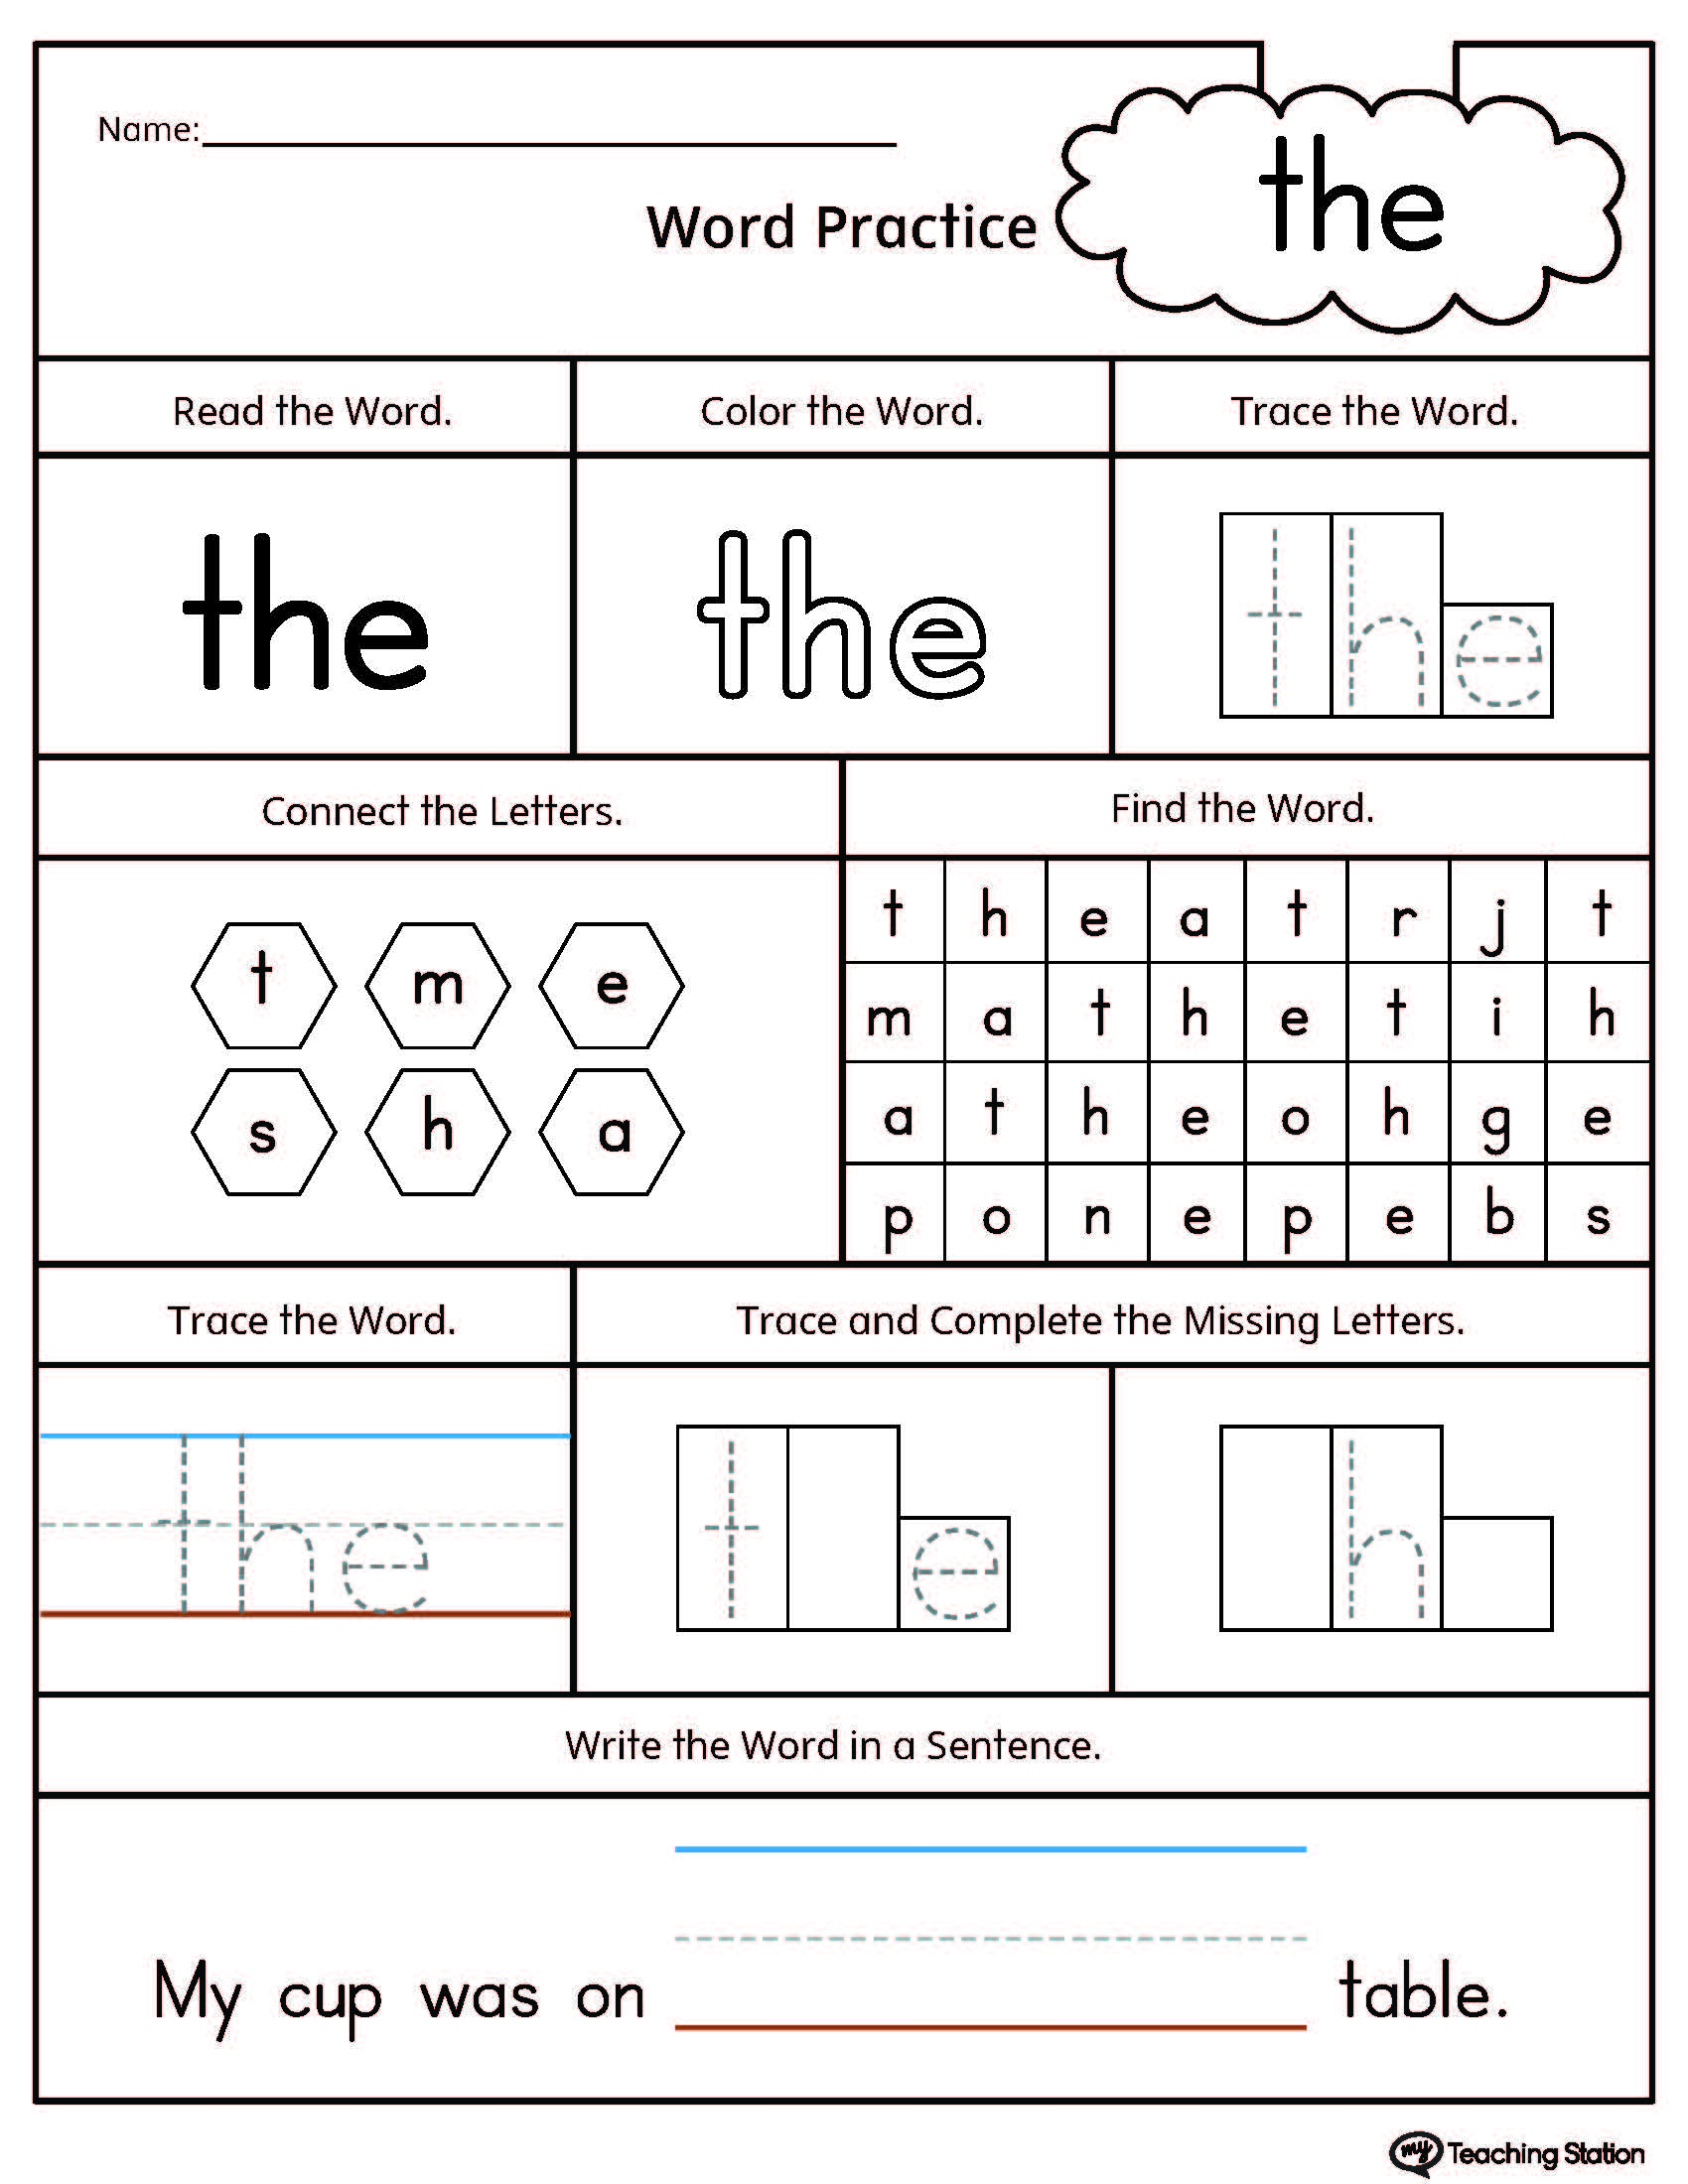 Worksheet Free Sight Words Printables high frequency words printable worksheets myteachingstation com sight word the worksheet